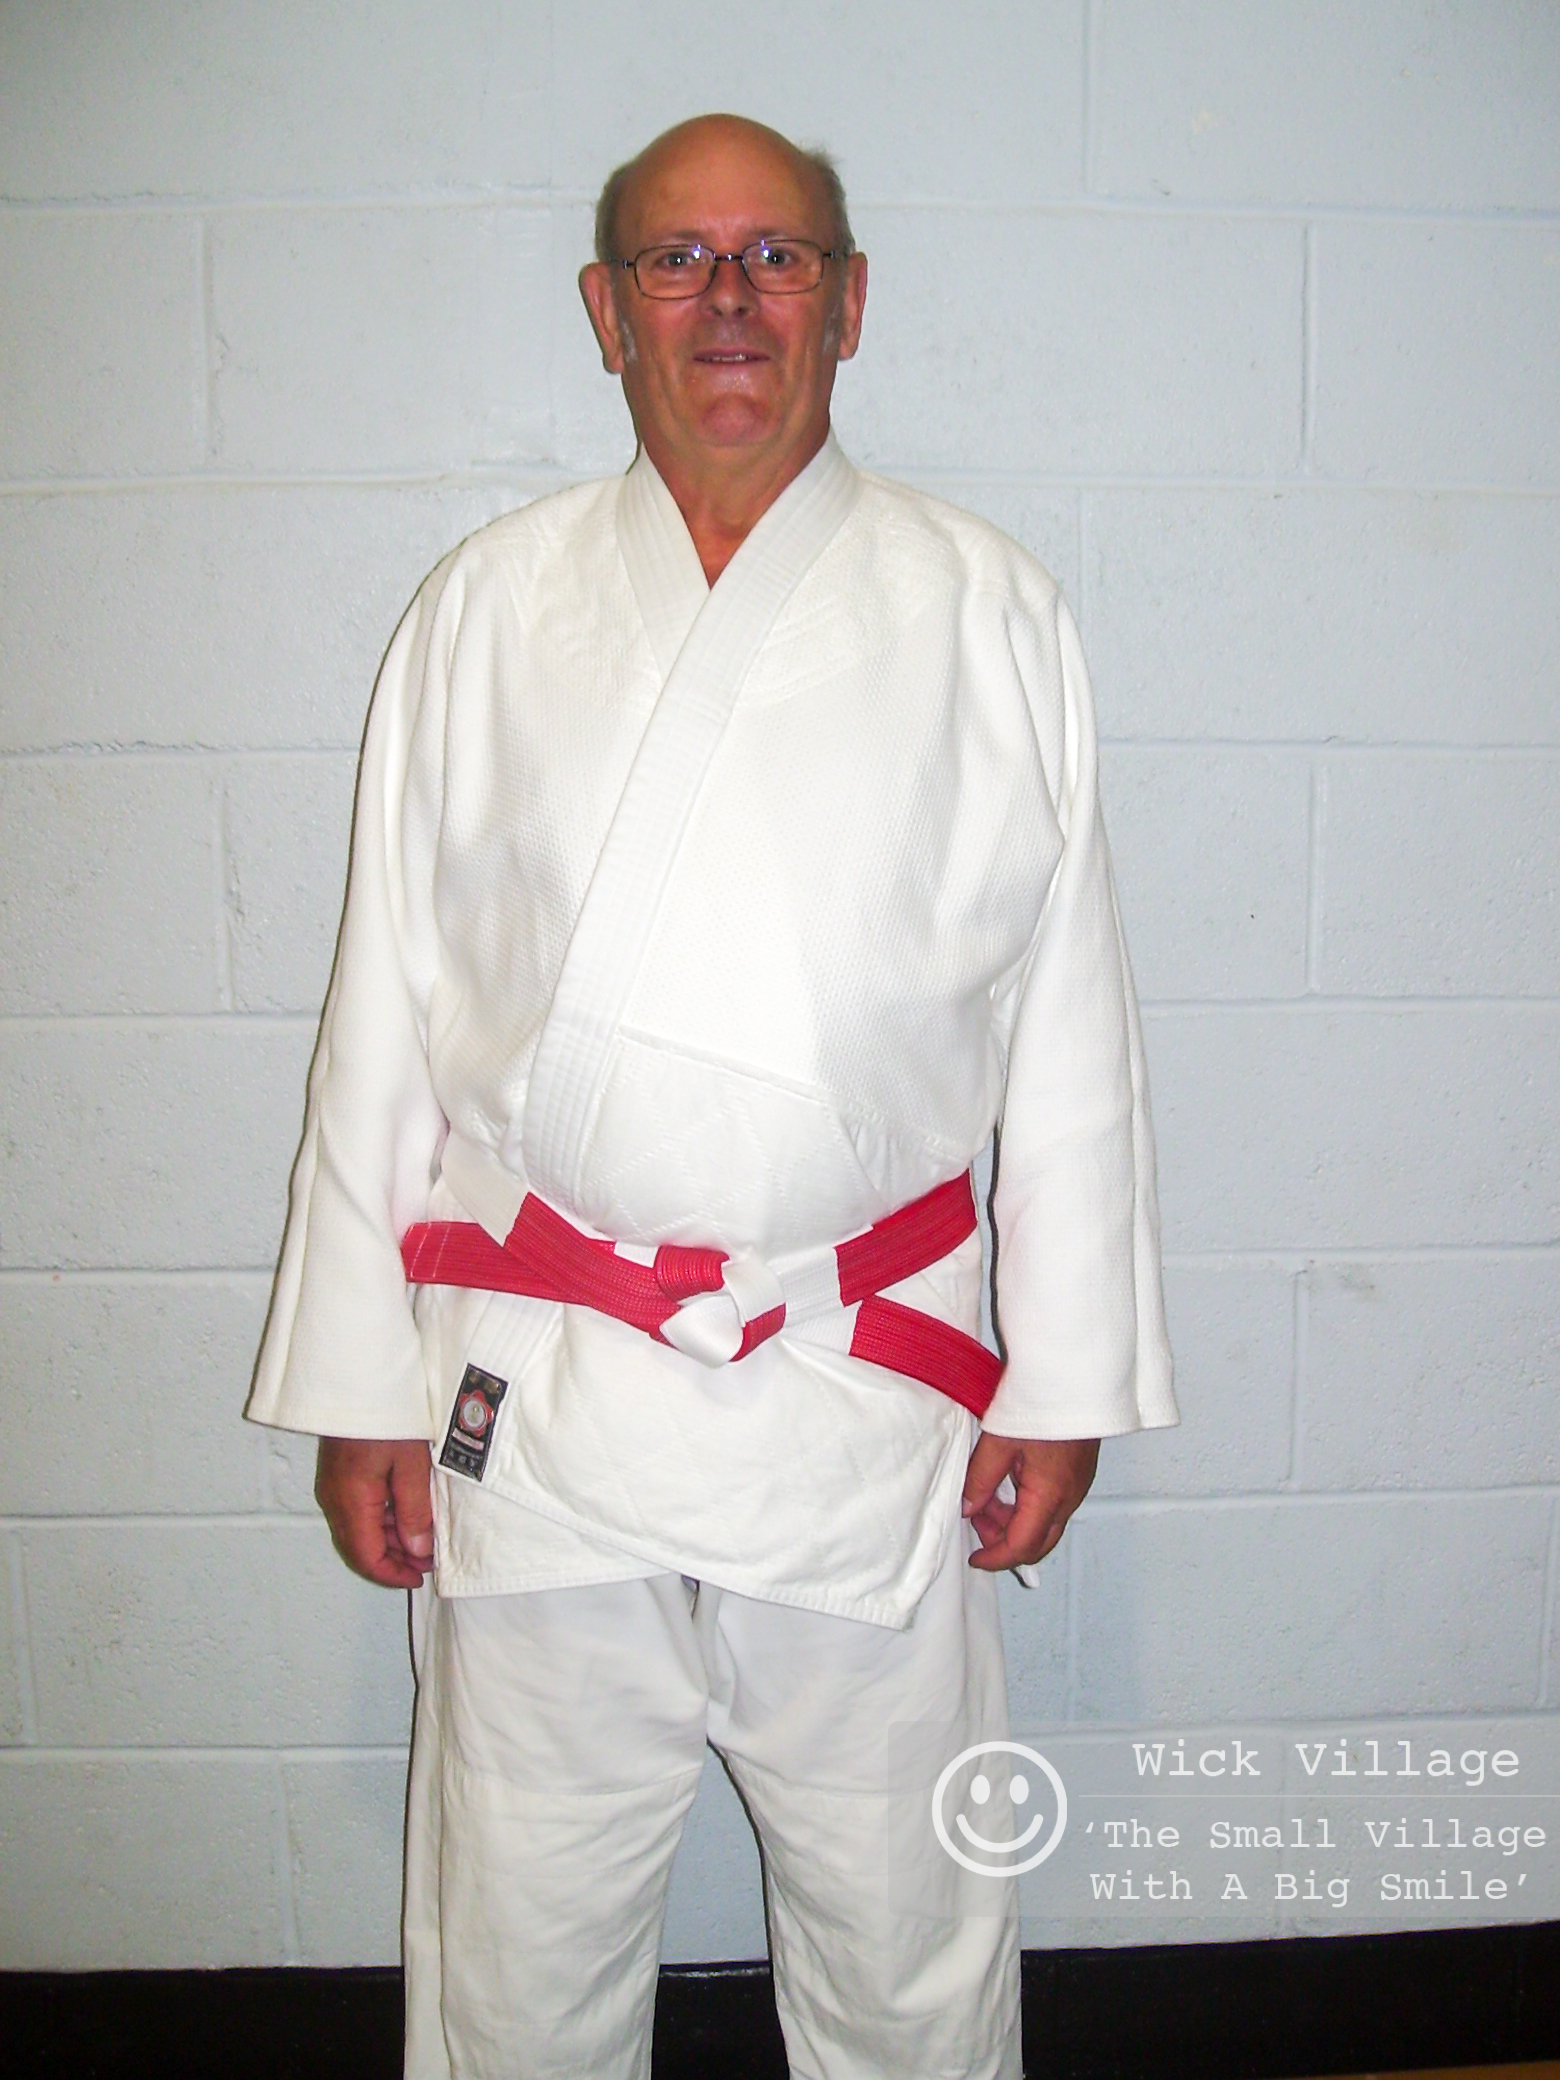 Don Ellis instructor of the Judokan Judo Club in Wick Village is pictured wearing his red & white belt (6th dan) with pride. Don received the award at a British Judo Club course held in Oxford.